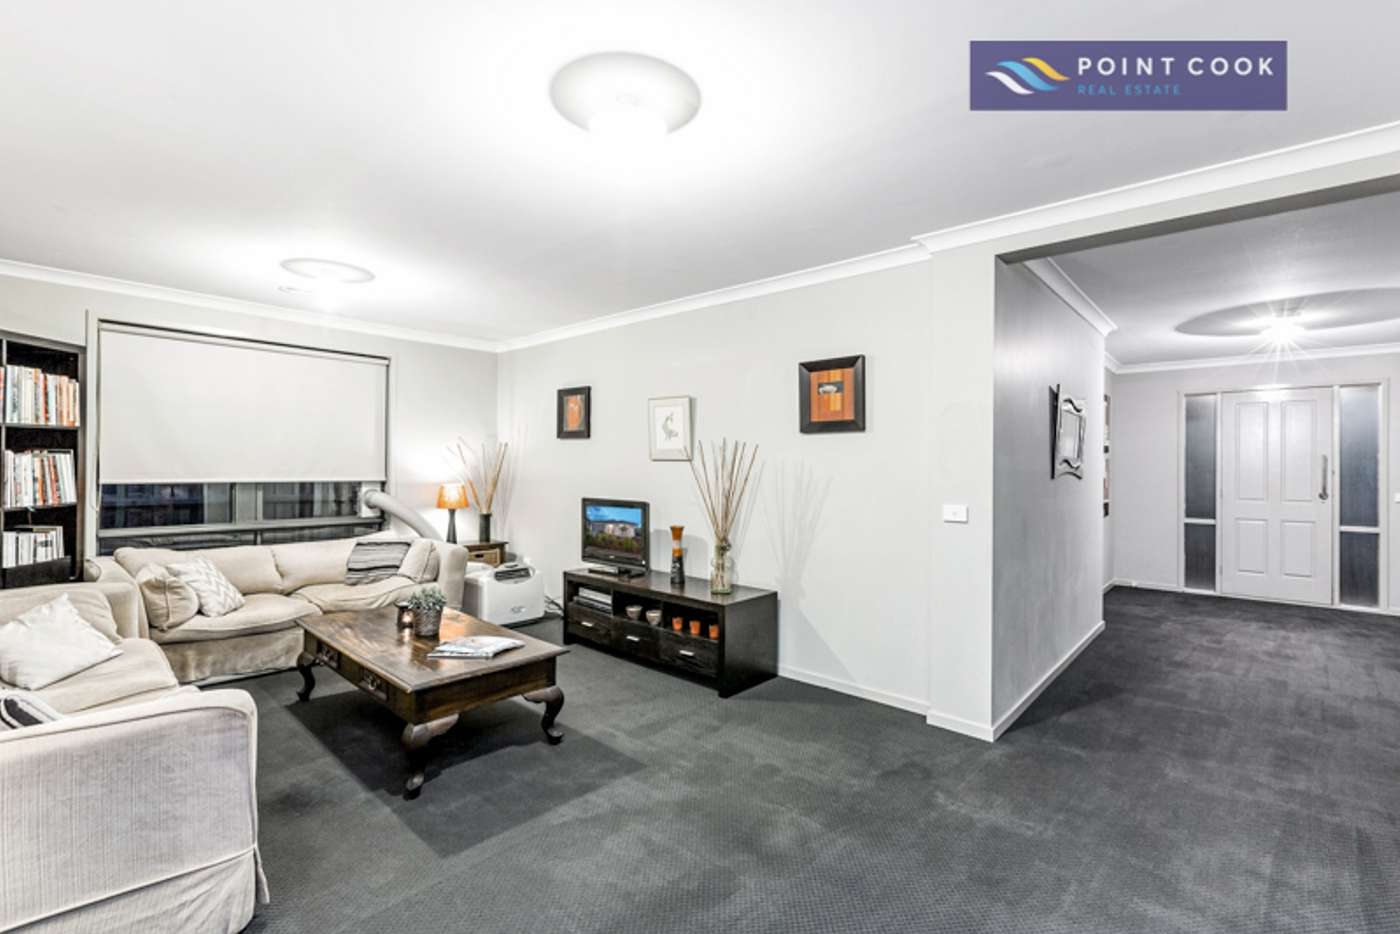 Seventh view of Homely house listing, 130 Yuruga Boulevard, Point Cook VIC 3030